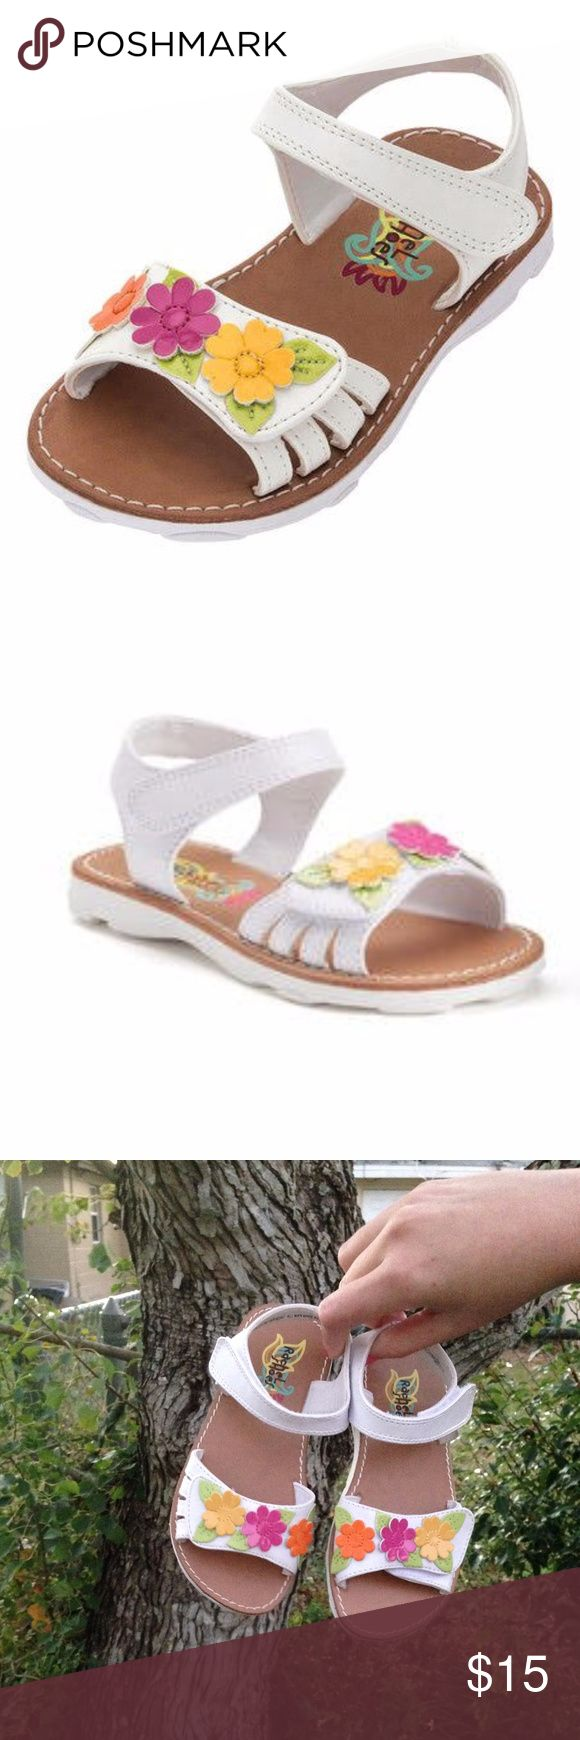 NWOT Rachel Shoes Floral Toddler Sandals NWOT Rachel Shoes Floral Toddler Sandals  New never worn sandals, these were only tried on once, adorable flowers on the toes  Size 10, 10M Rachel Shoes Shoes Sandals & Flip Flops